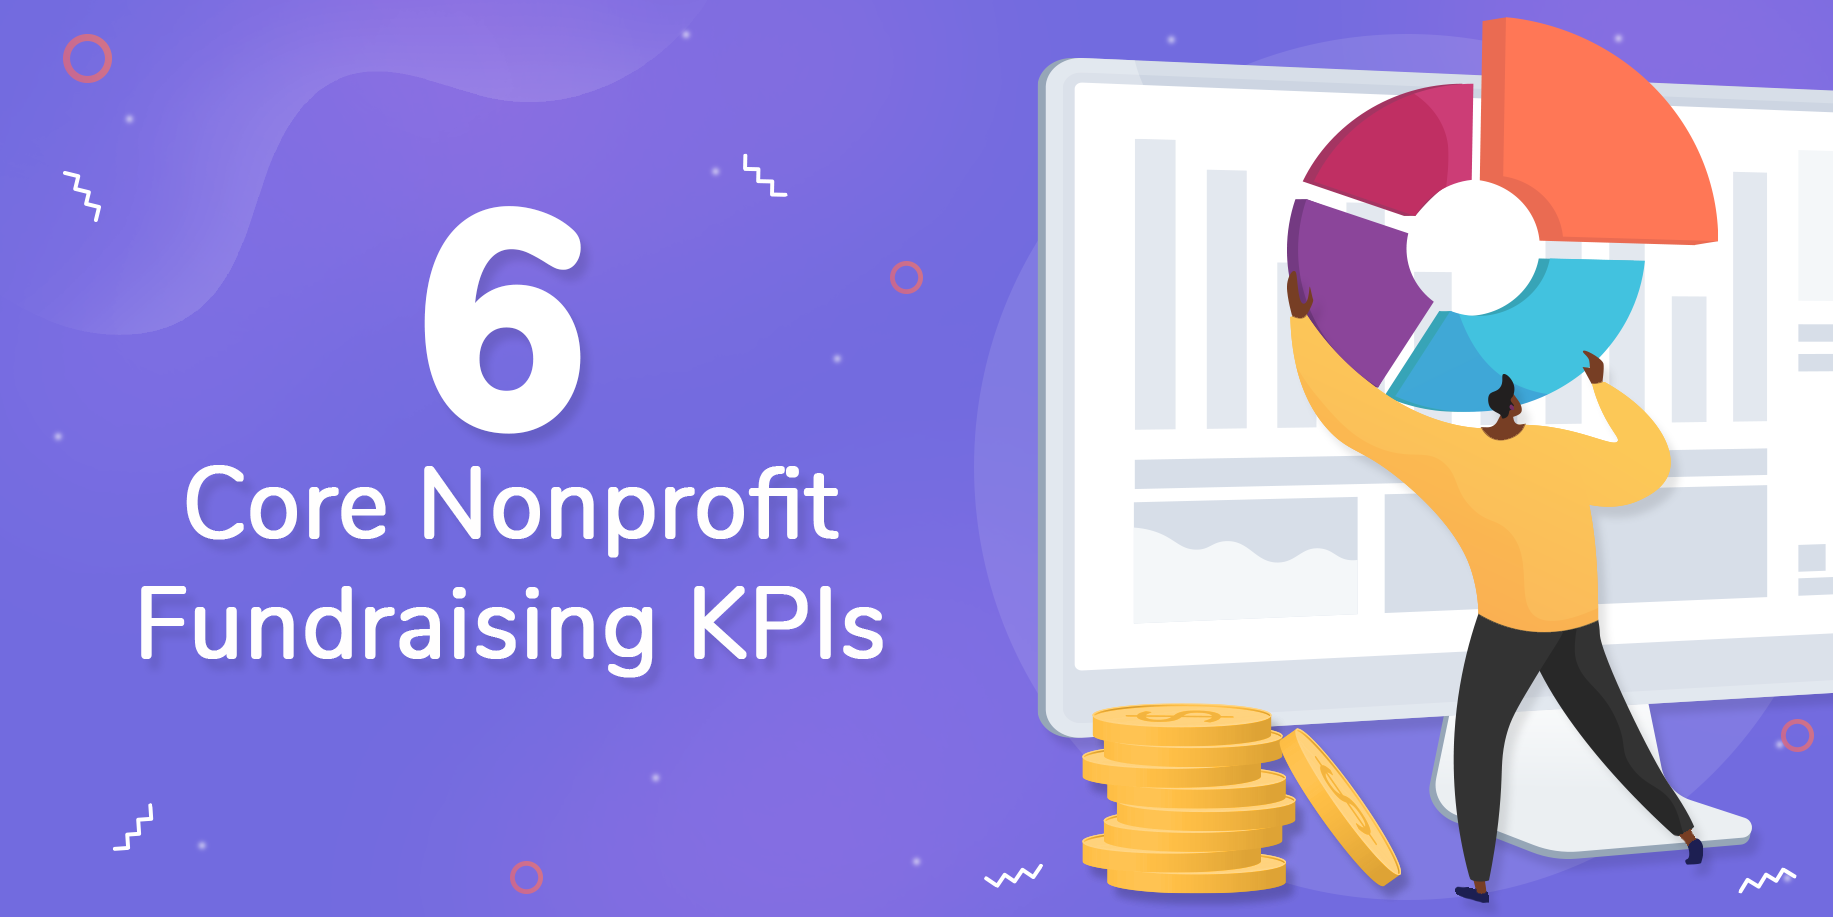 6 Core Nonprofit KPIs to Monitor the Health of Your Fundraising Program